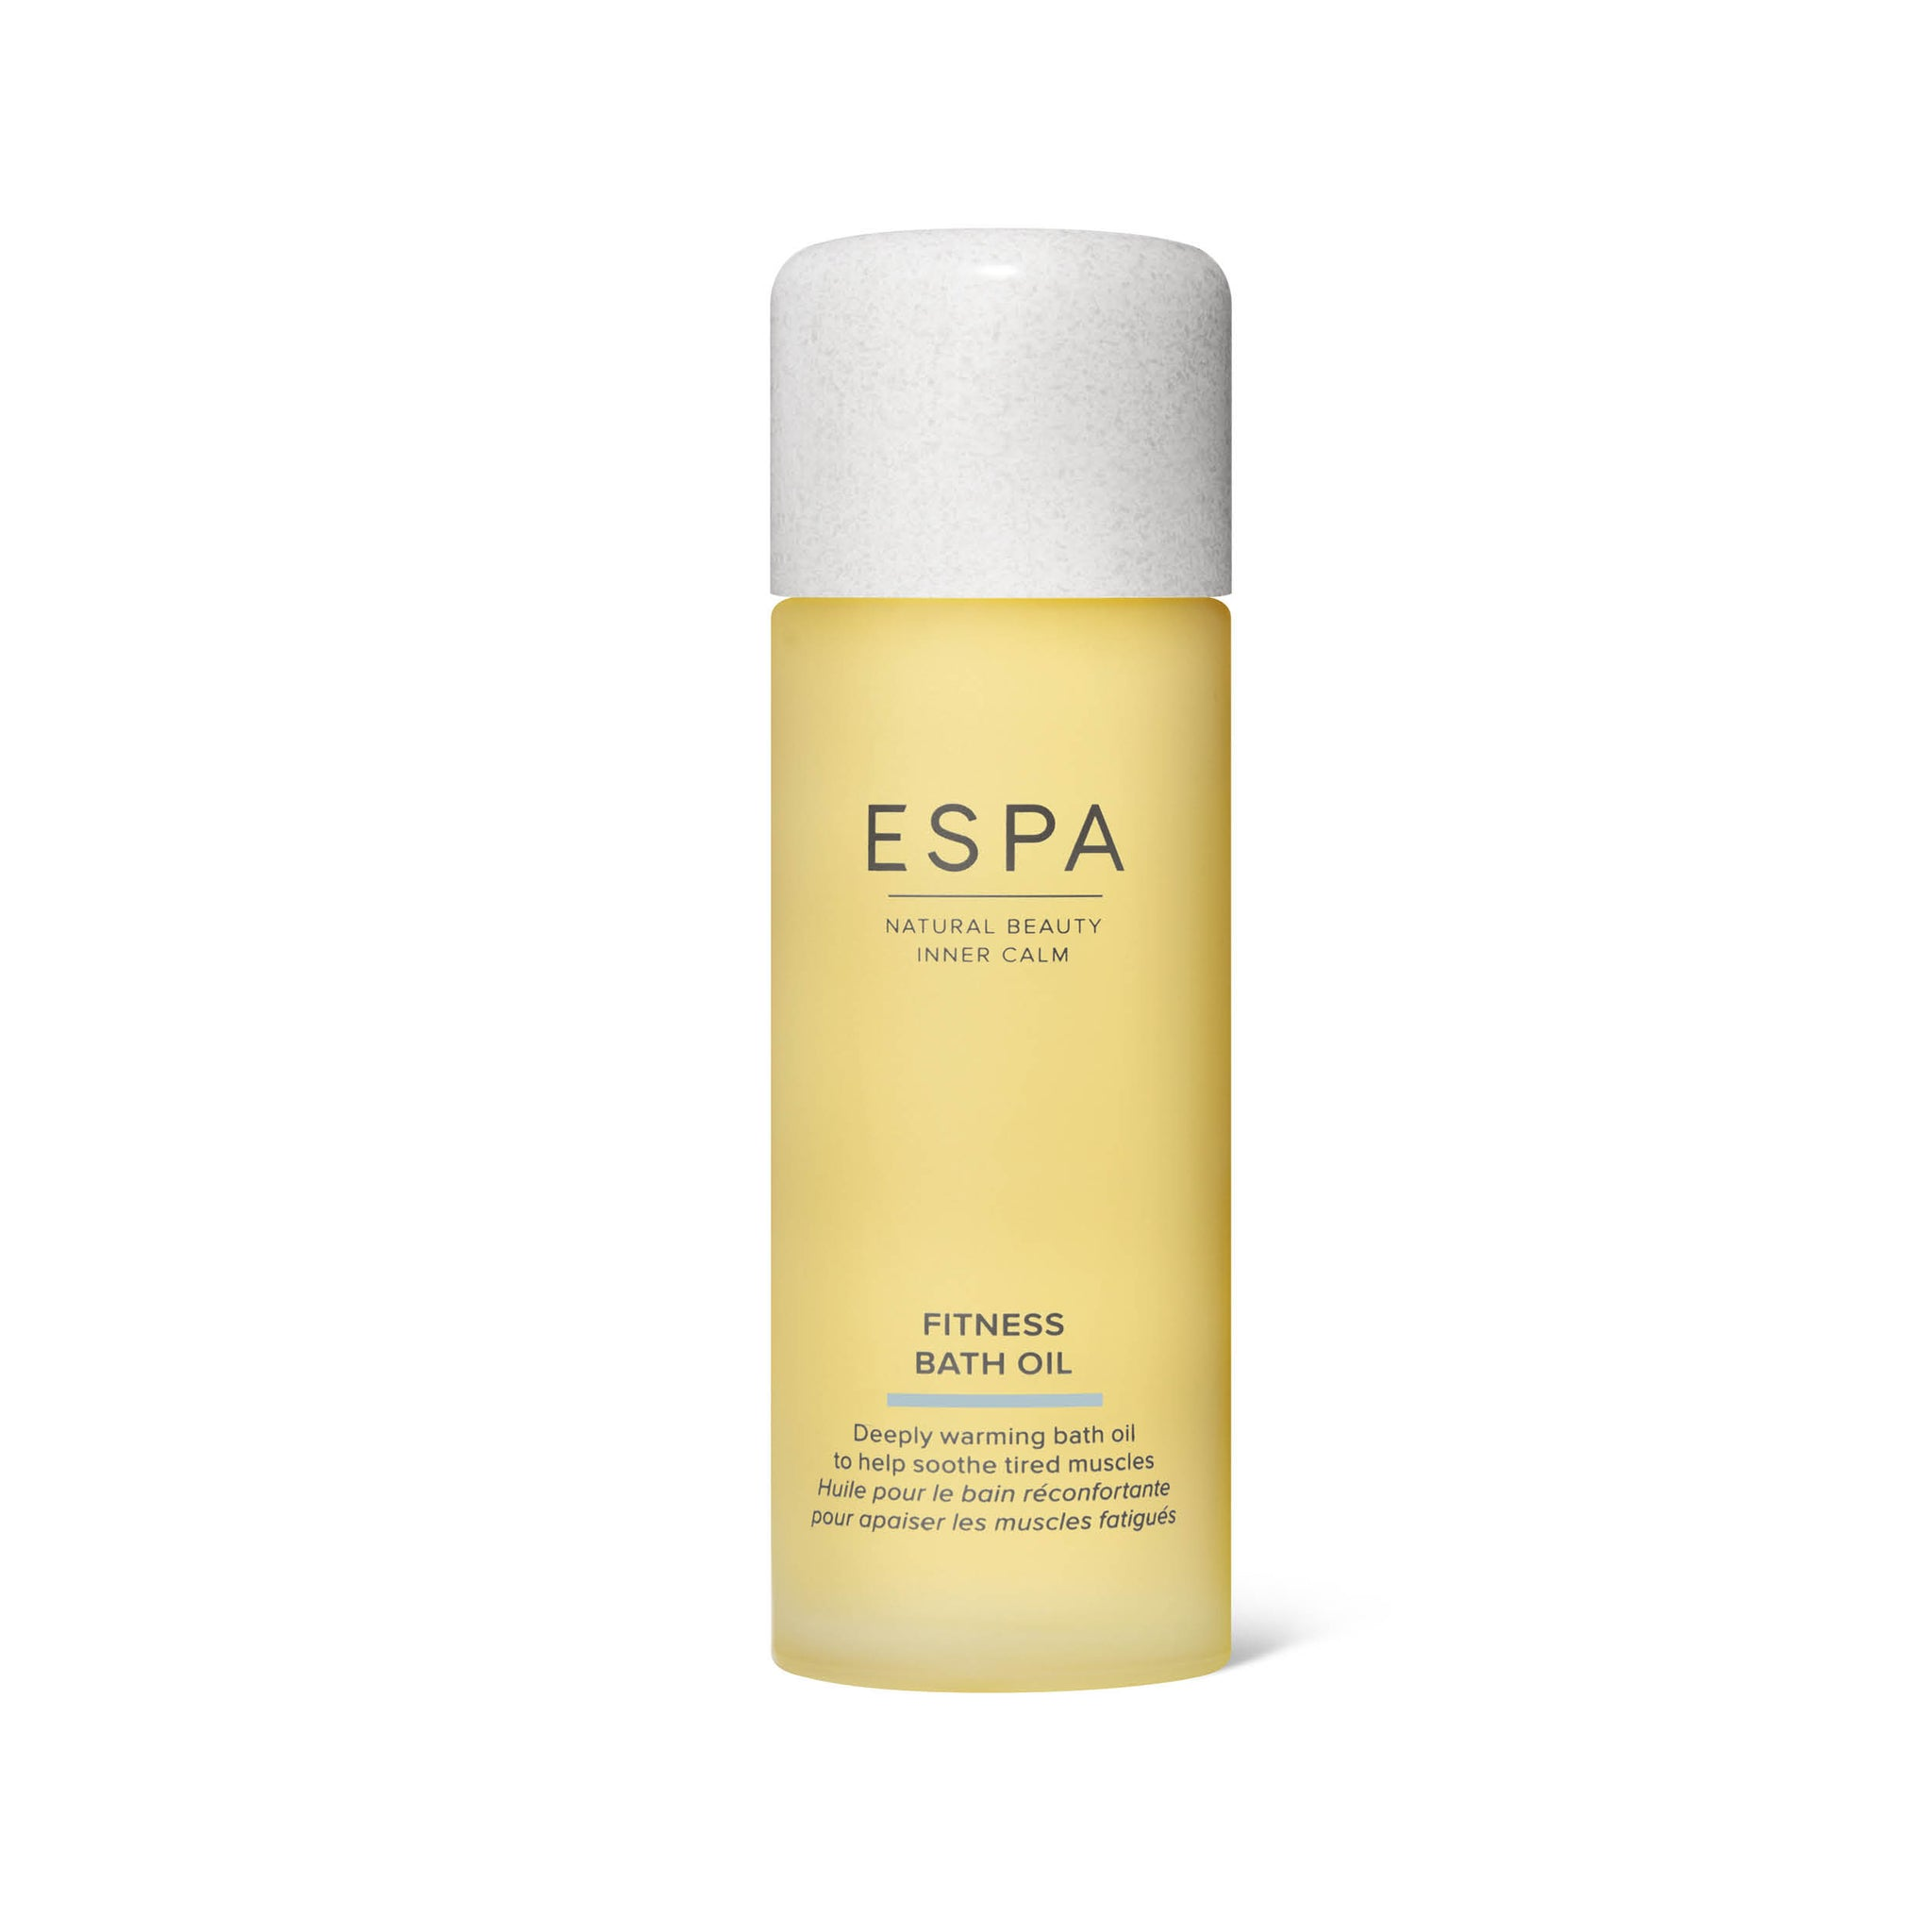 ESPA Fitness Bath Oil